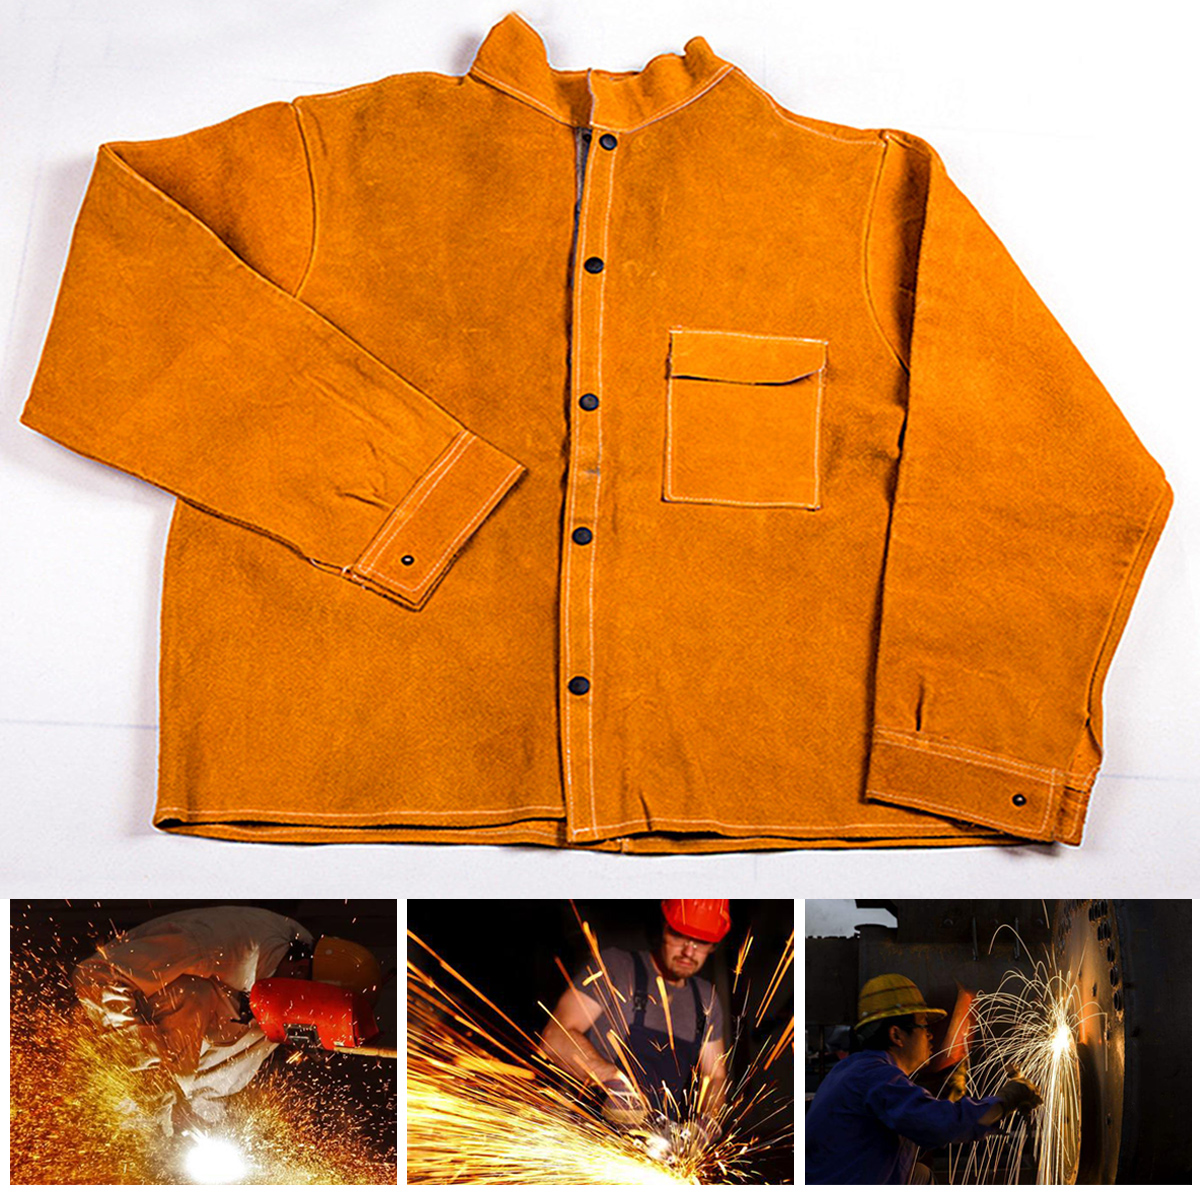 L/ XL/ XXL/ XXXL Welders Welding Jacket Protective Clothing Apparel Suit Safety